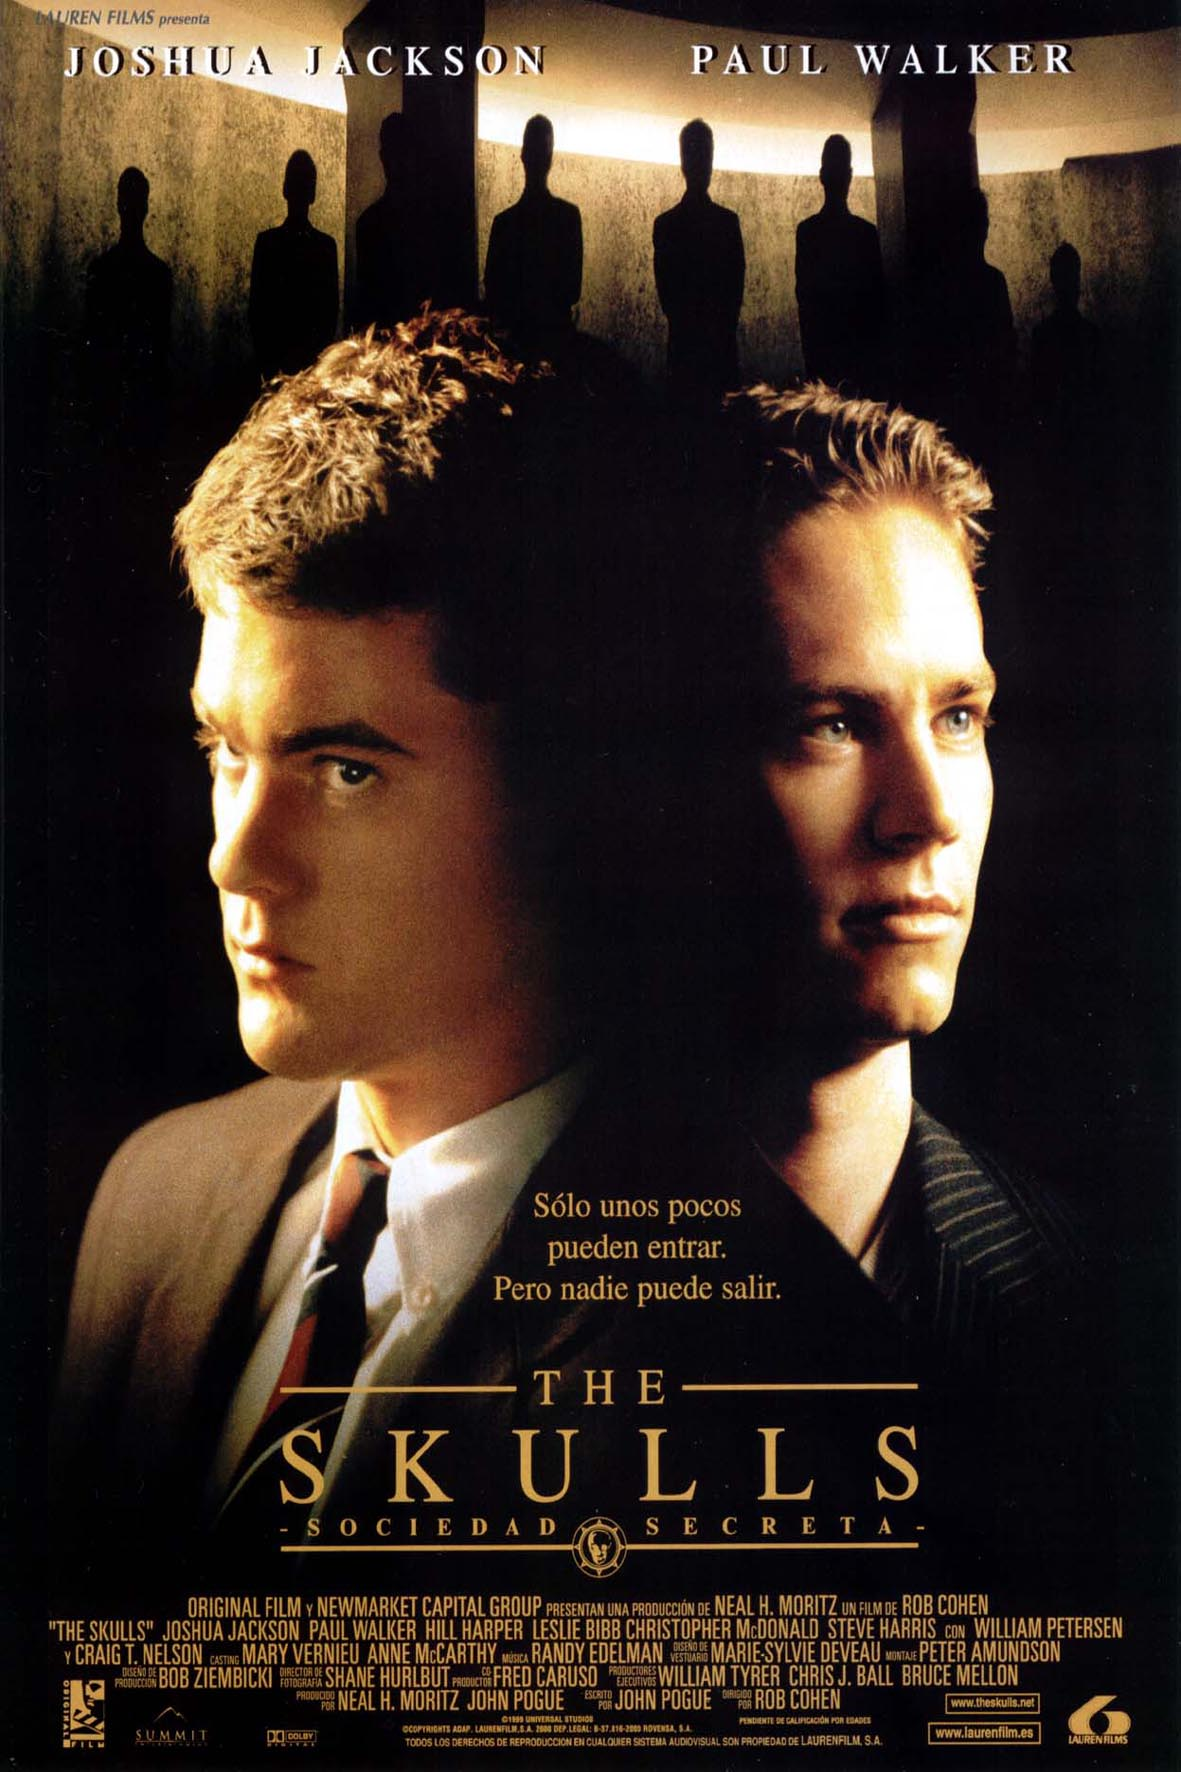 Sociedad Secreta (The Skulls) (2000)